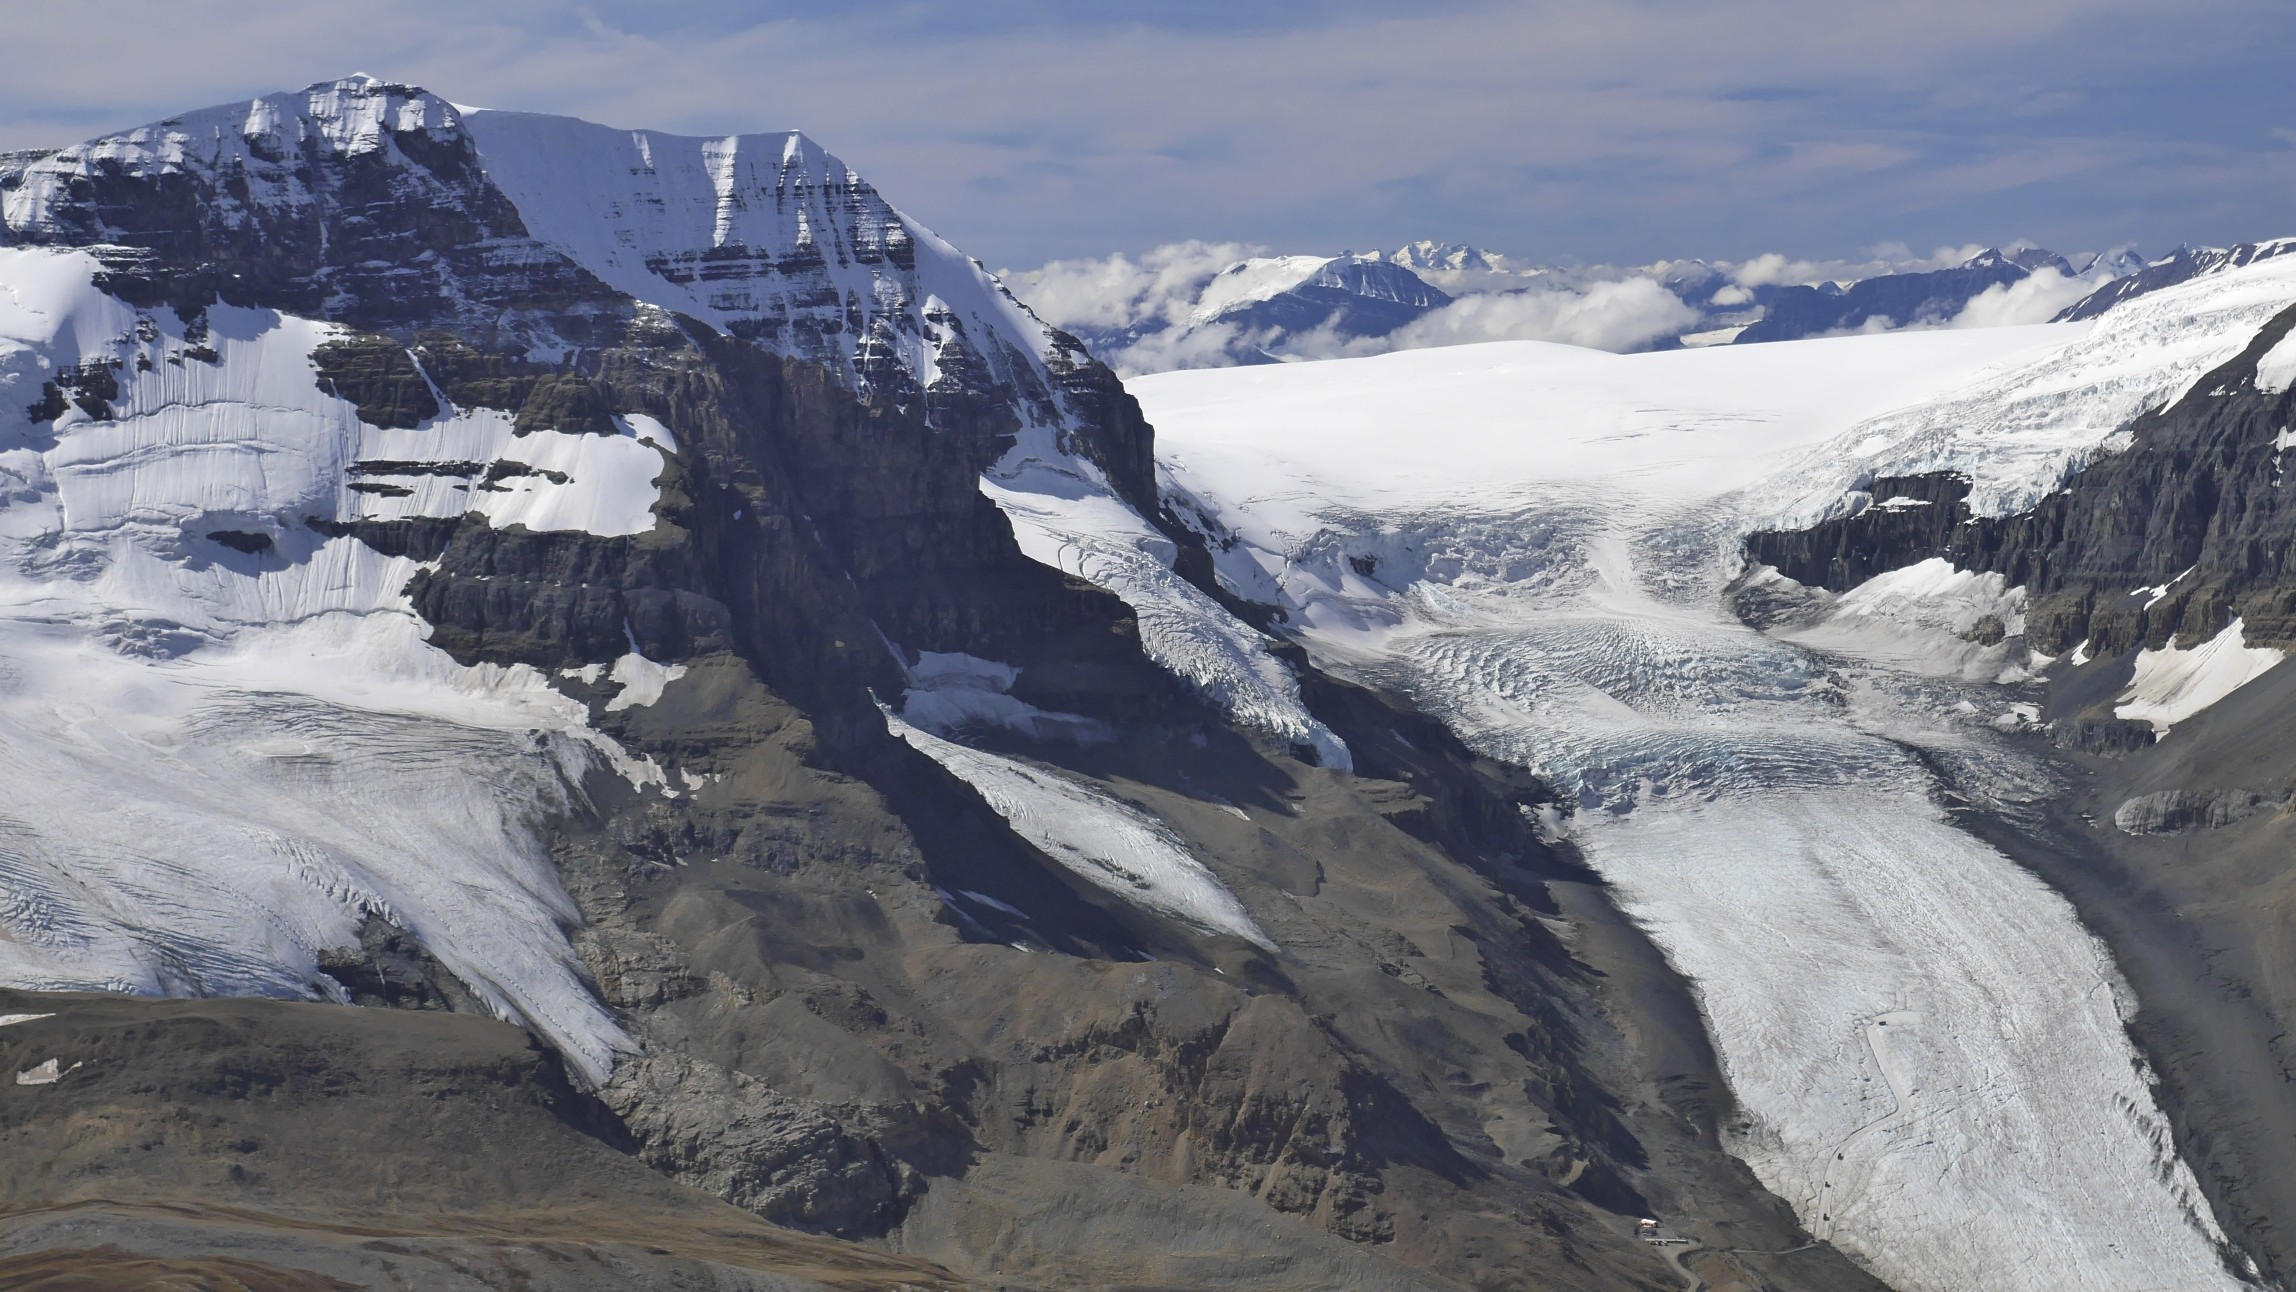 Mt. Andromeda and the Athabasca Glacier from Nigel Peak